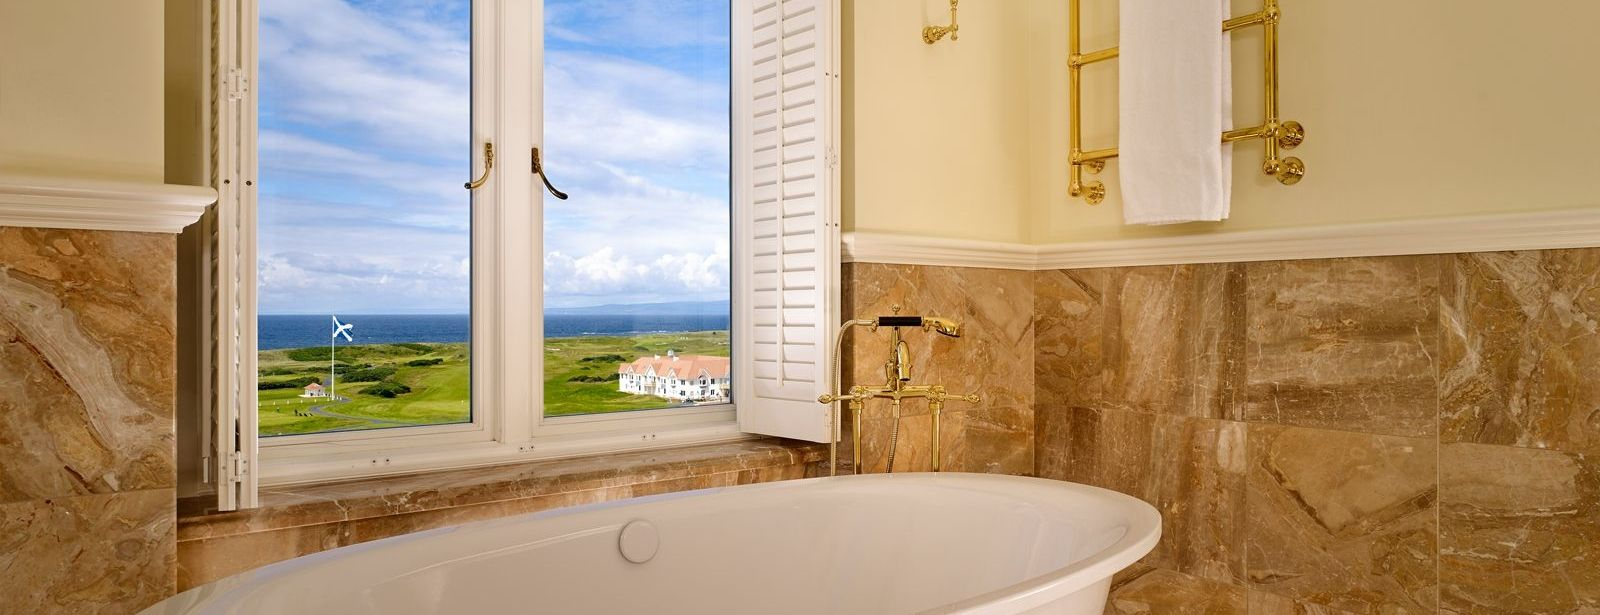 Deluxe Ocean View Room Bath